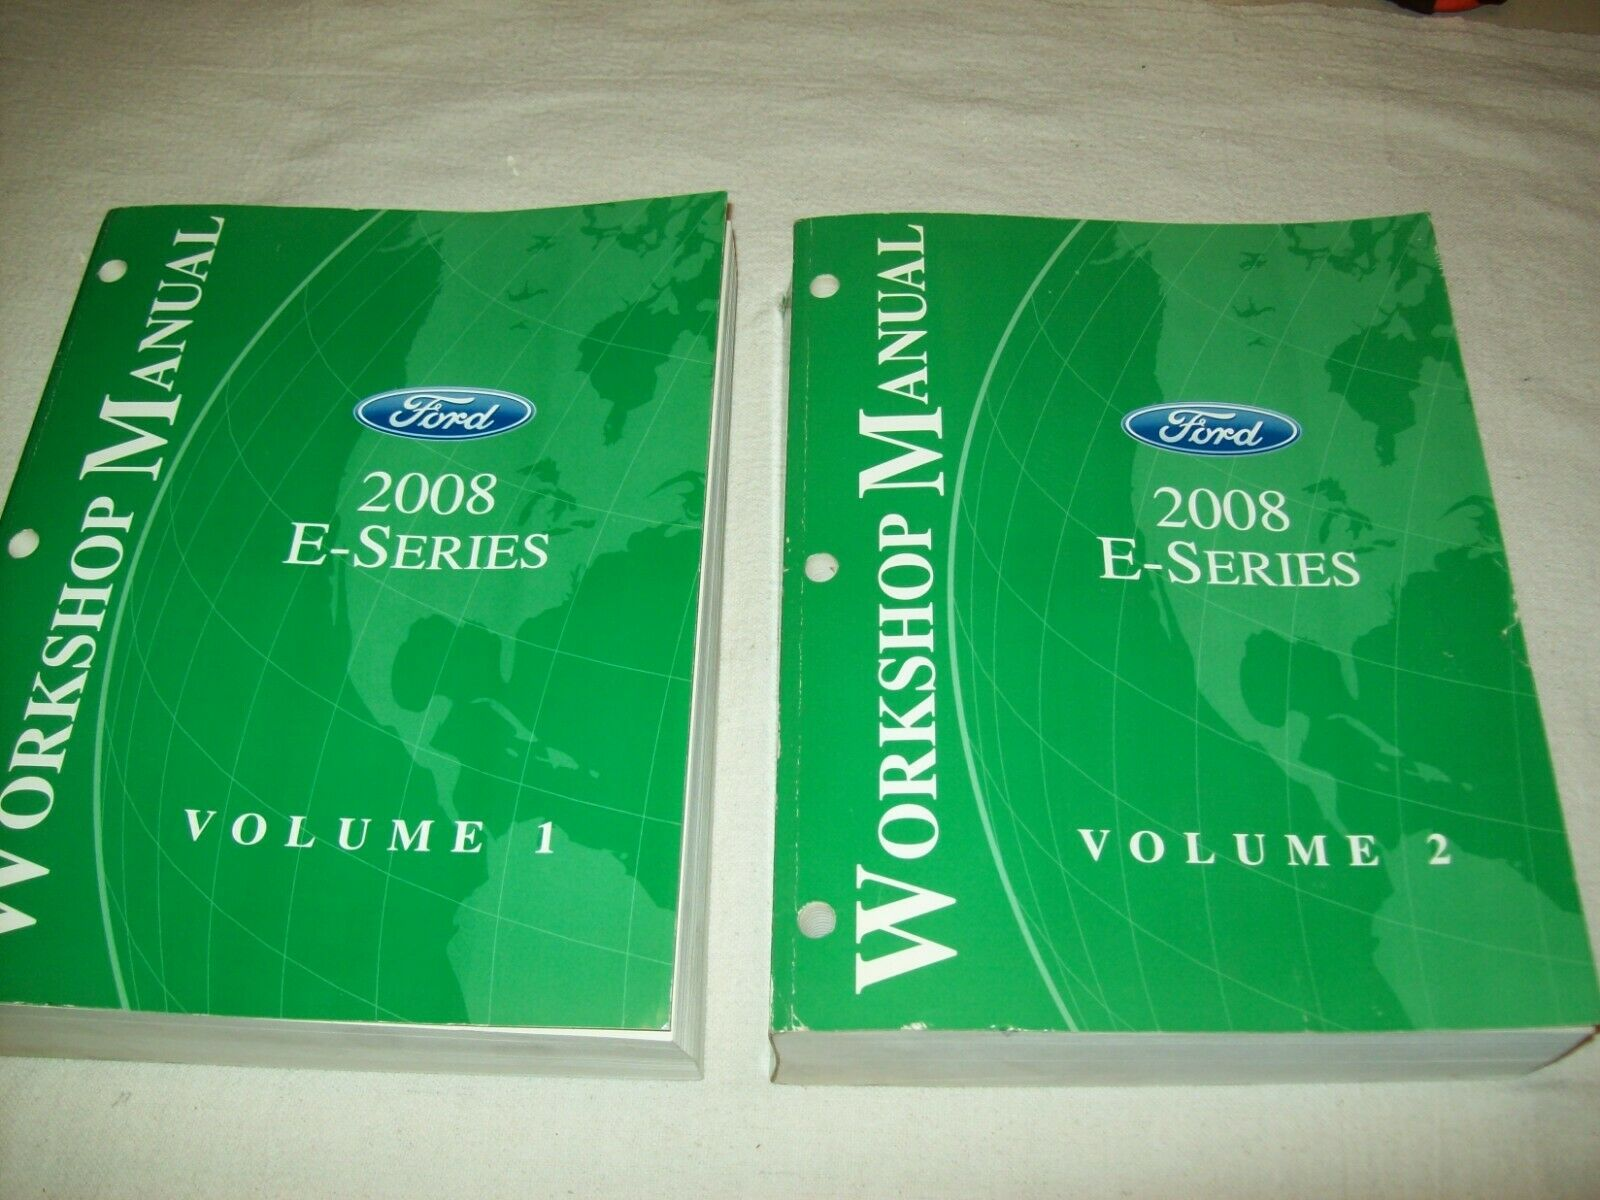 Ford 2008 E Series Van Workshop Manuals Vol. 1 + 2